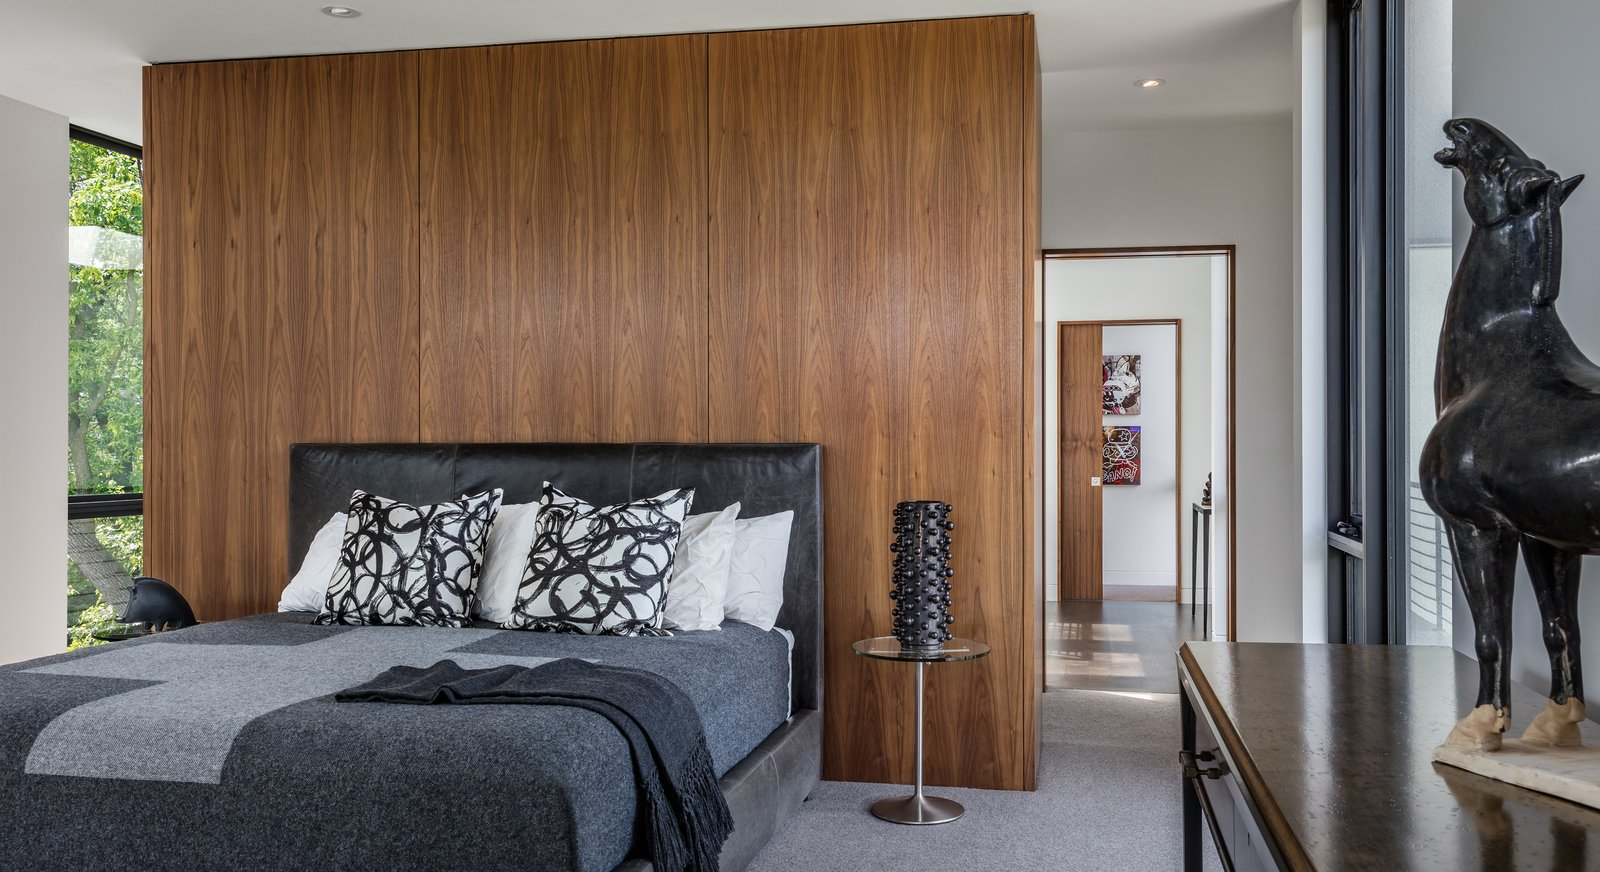 Tagged: Bedroom, Storage, Bed, and Ceiling Lighting.  Calhoun Pavilions Residence by Peterssen/Keller Architecture